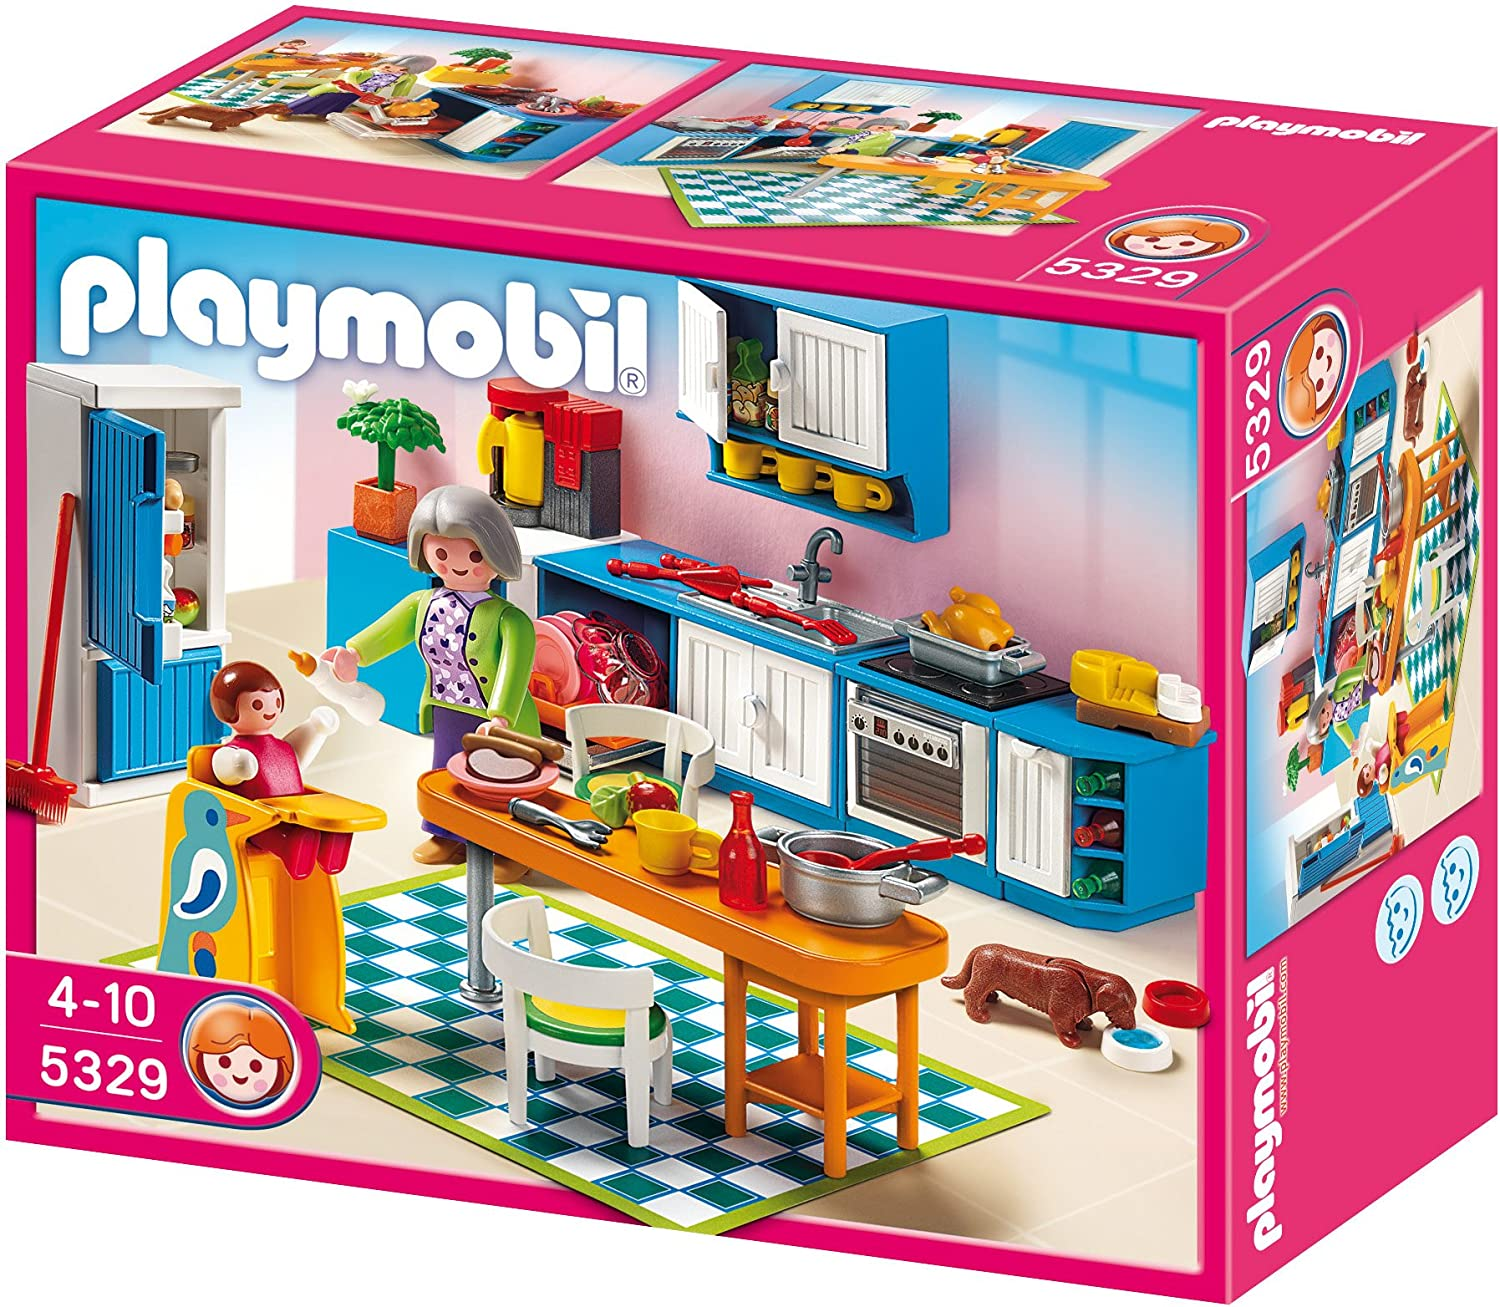 playmobil einbauk che 5329 test preisvergleich. Black Bedroom Furniture Sets. Home Design Ideas